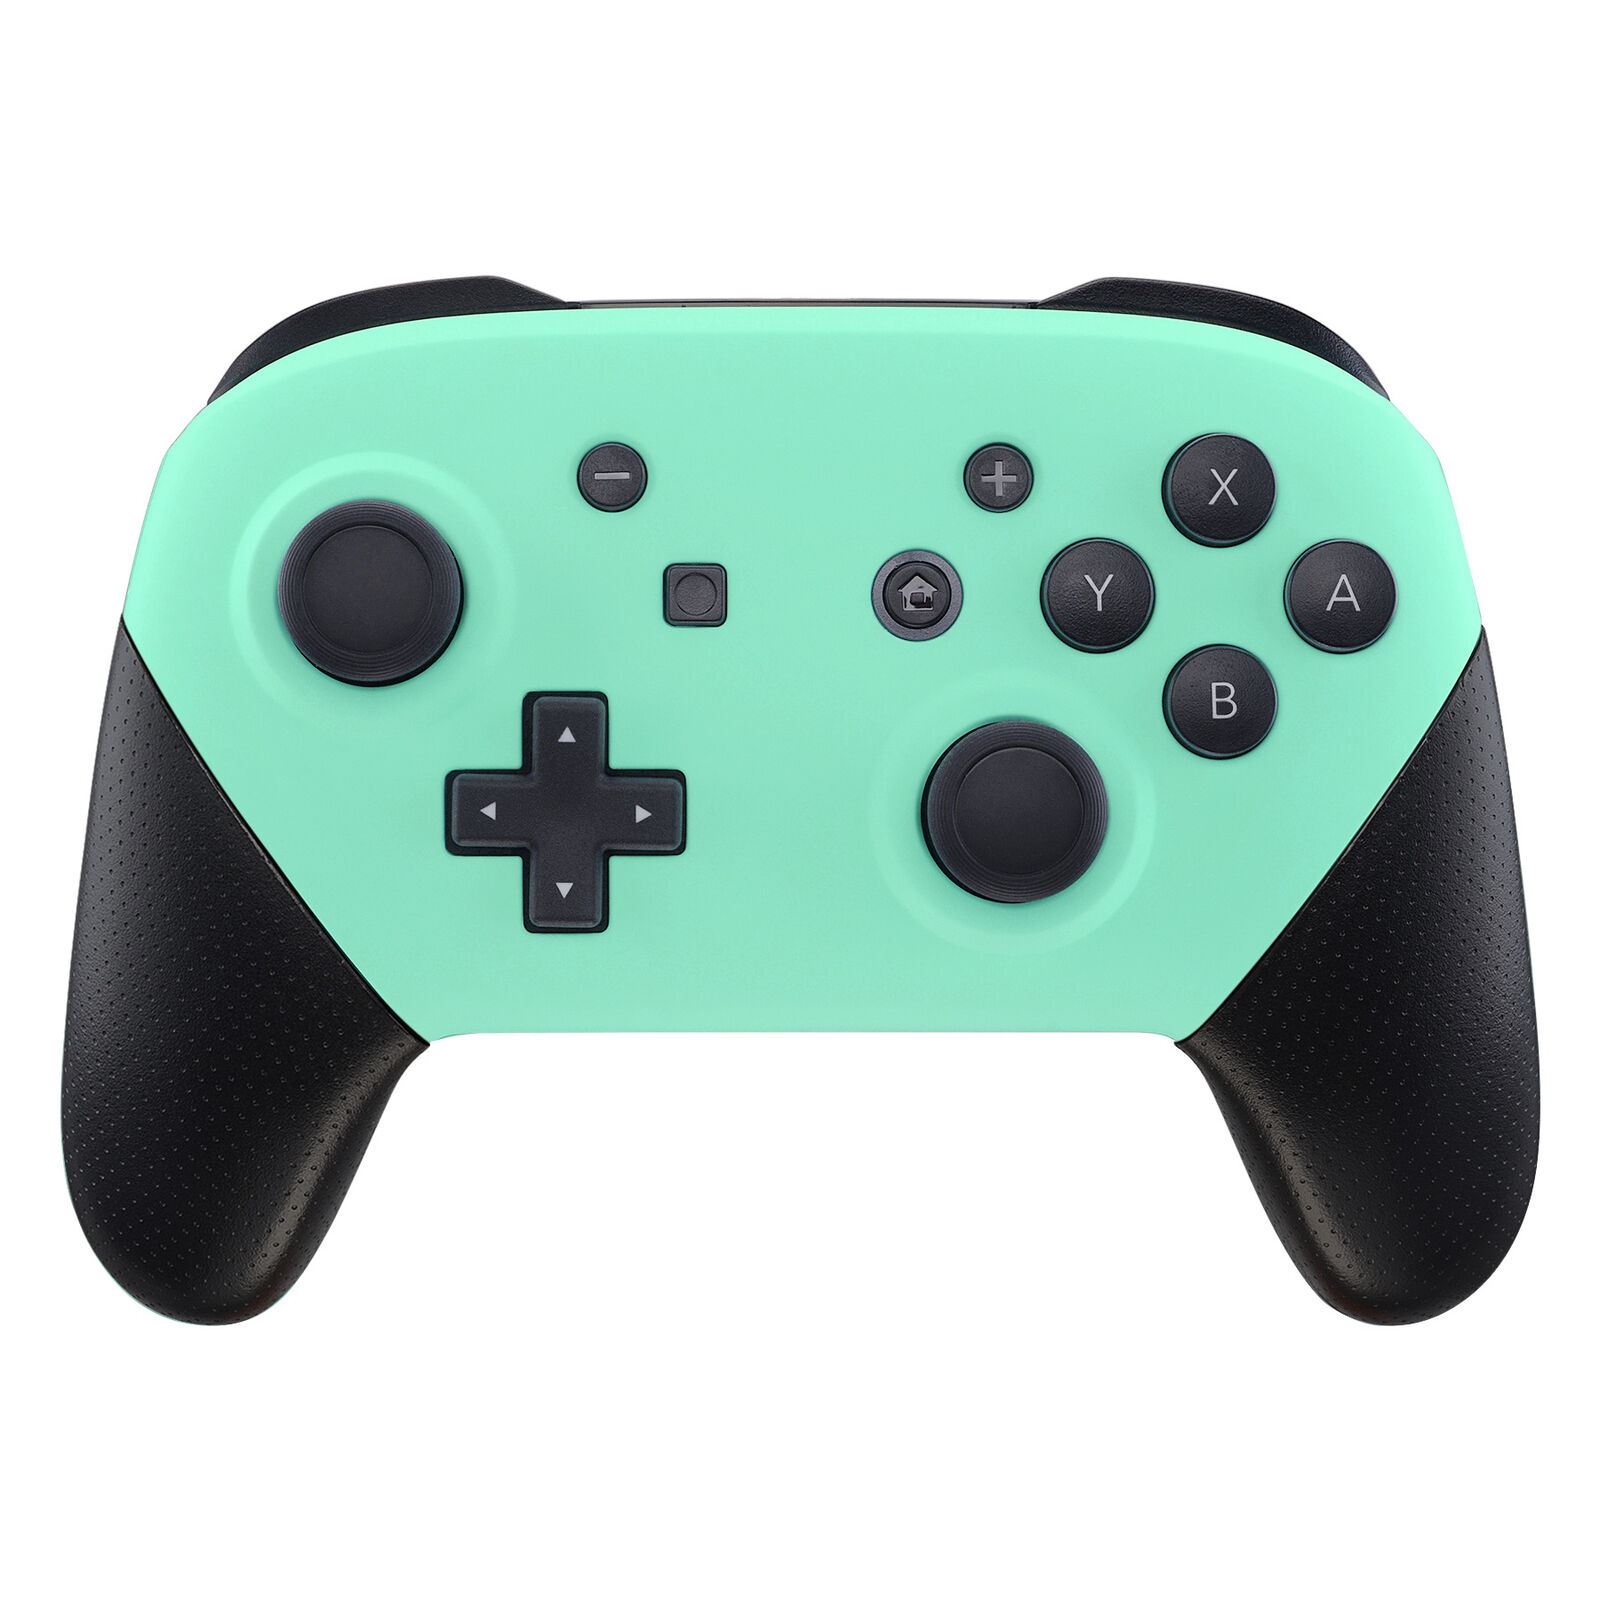 Nintendo Switch Pro Controller Black and Mint Green Faceplate